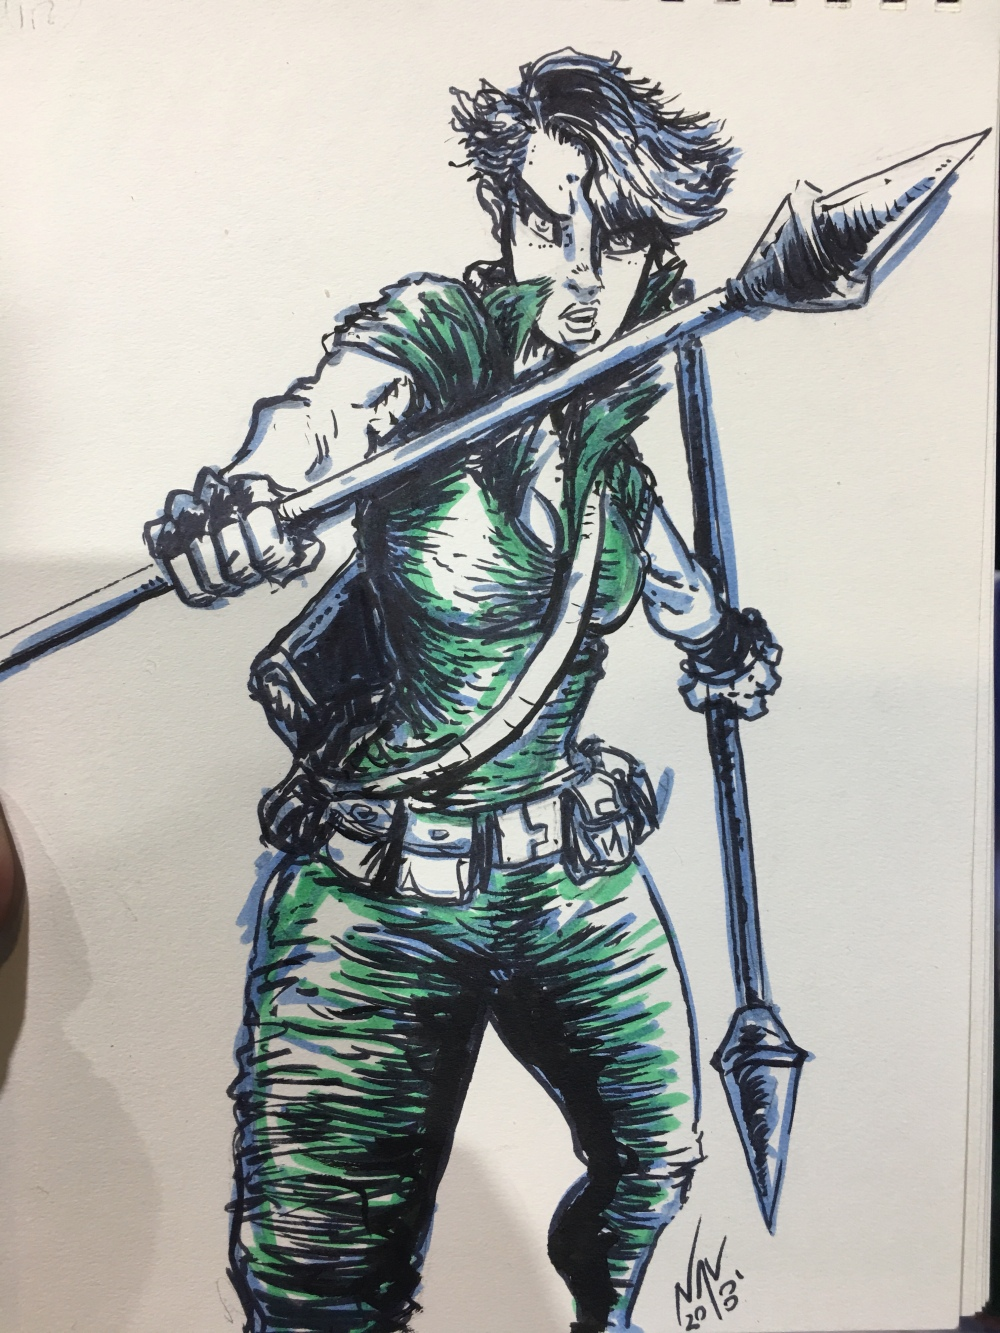 LADY JAYE - another character that caused early puberty